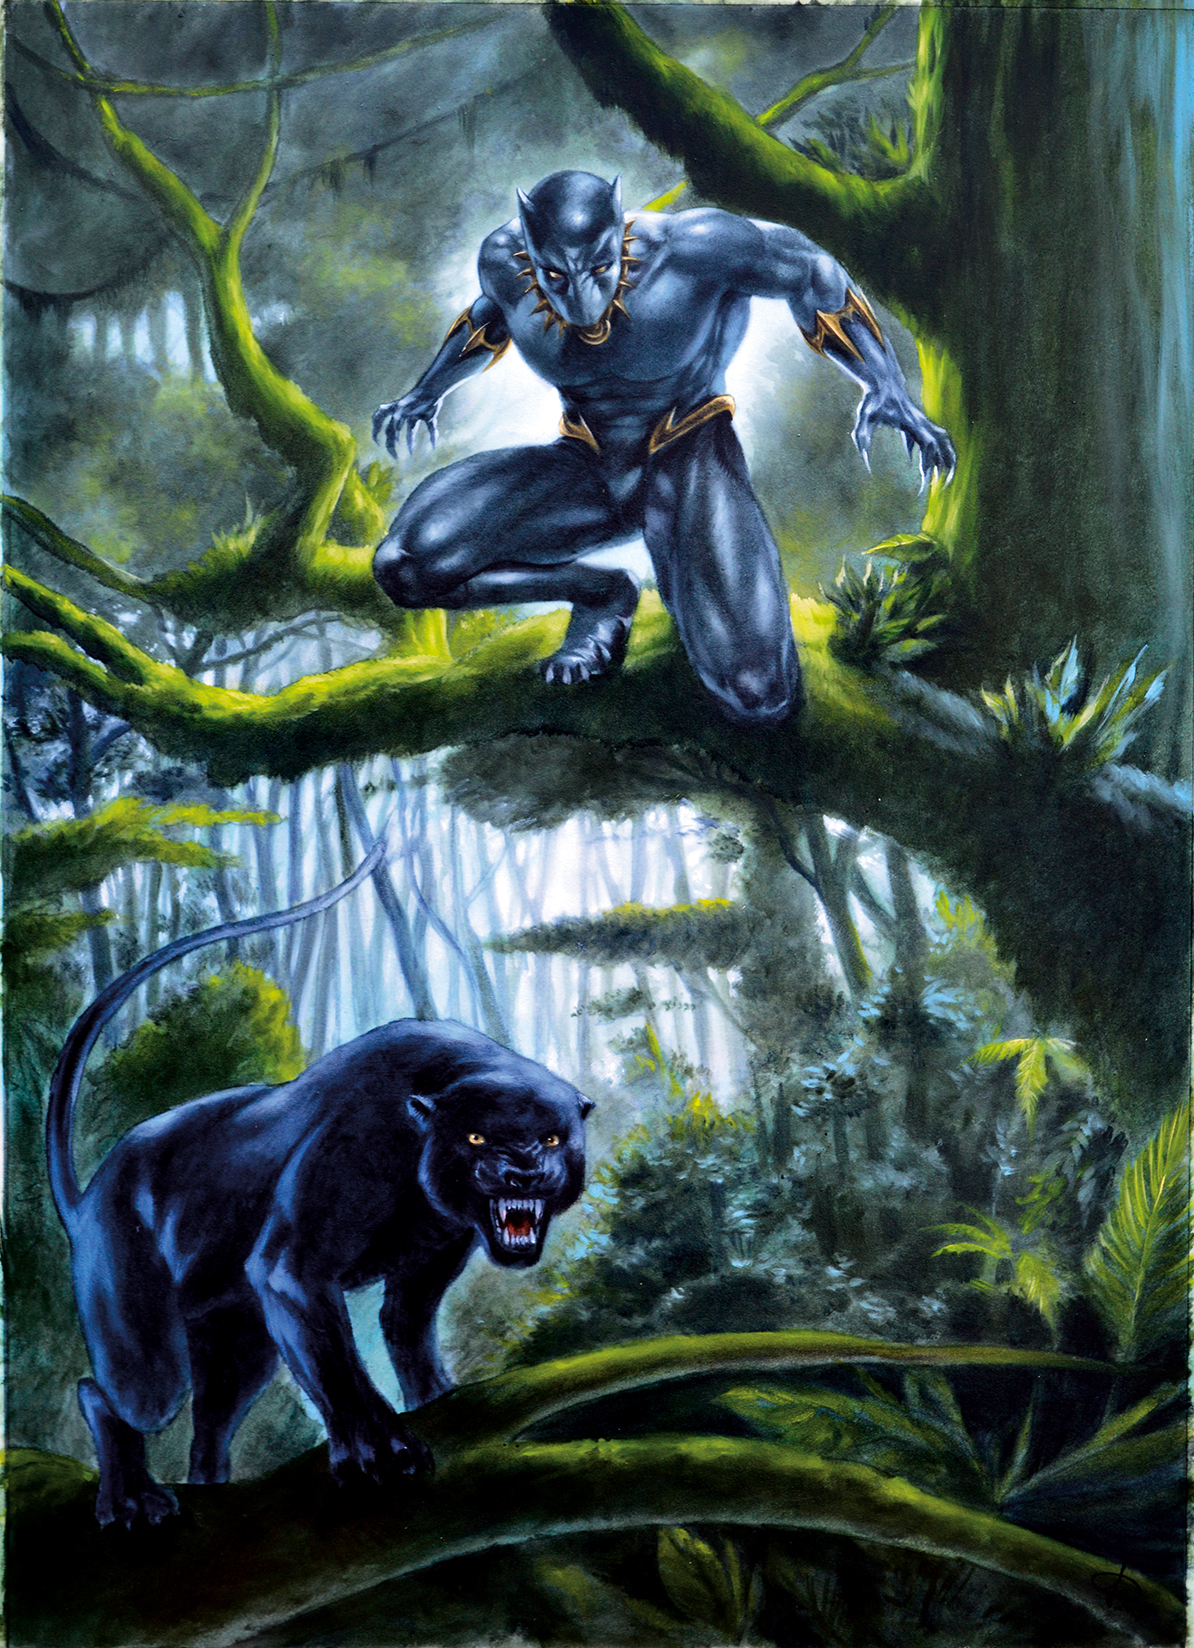 Black Panther tribute